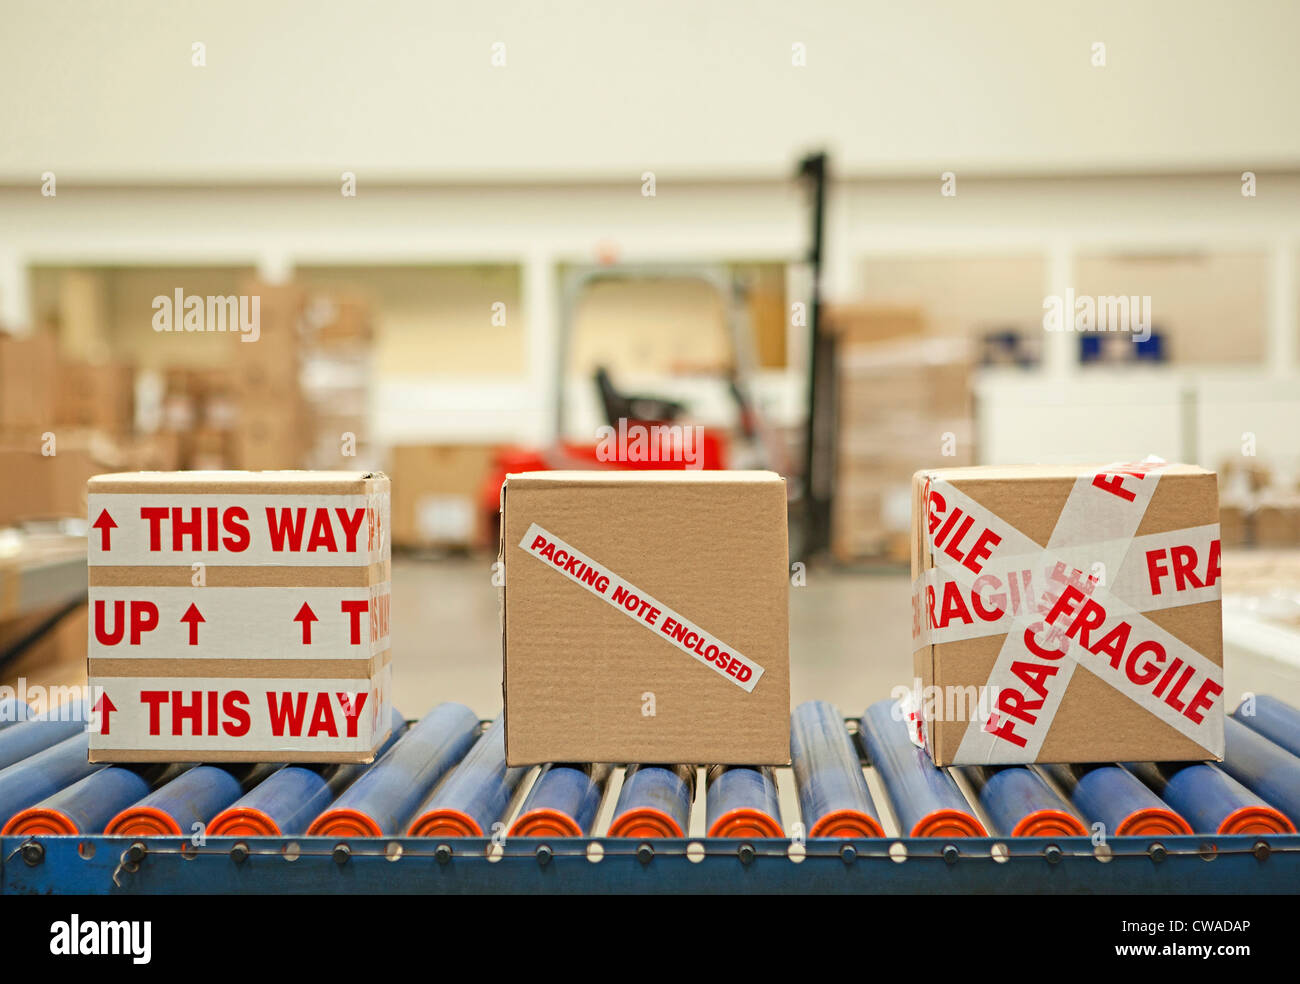 Three cardboard boxes with parcel tape on conveyor belt - Stock Image